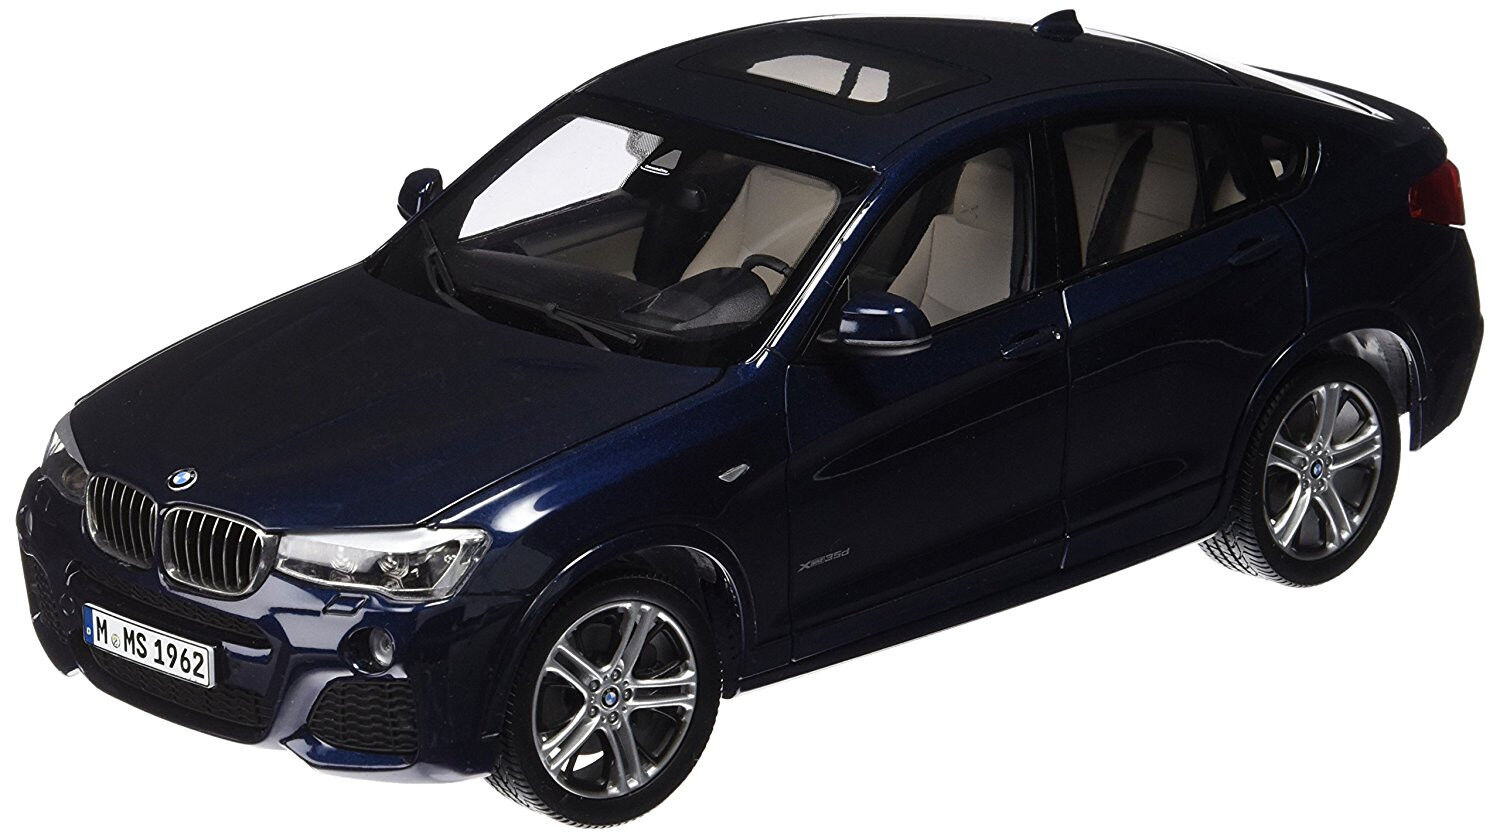 PAR97092  Voiture BMW X4 de Coloreee blu